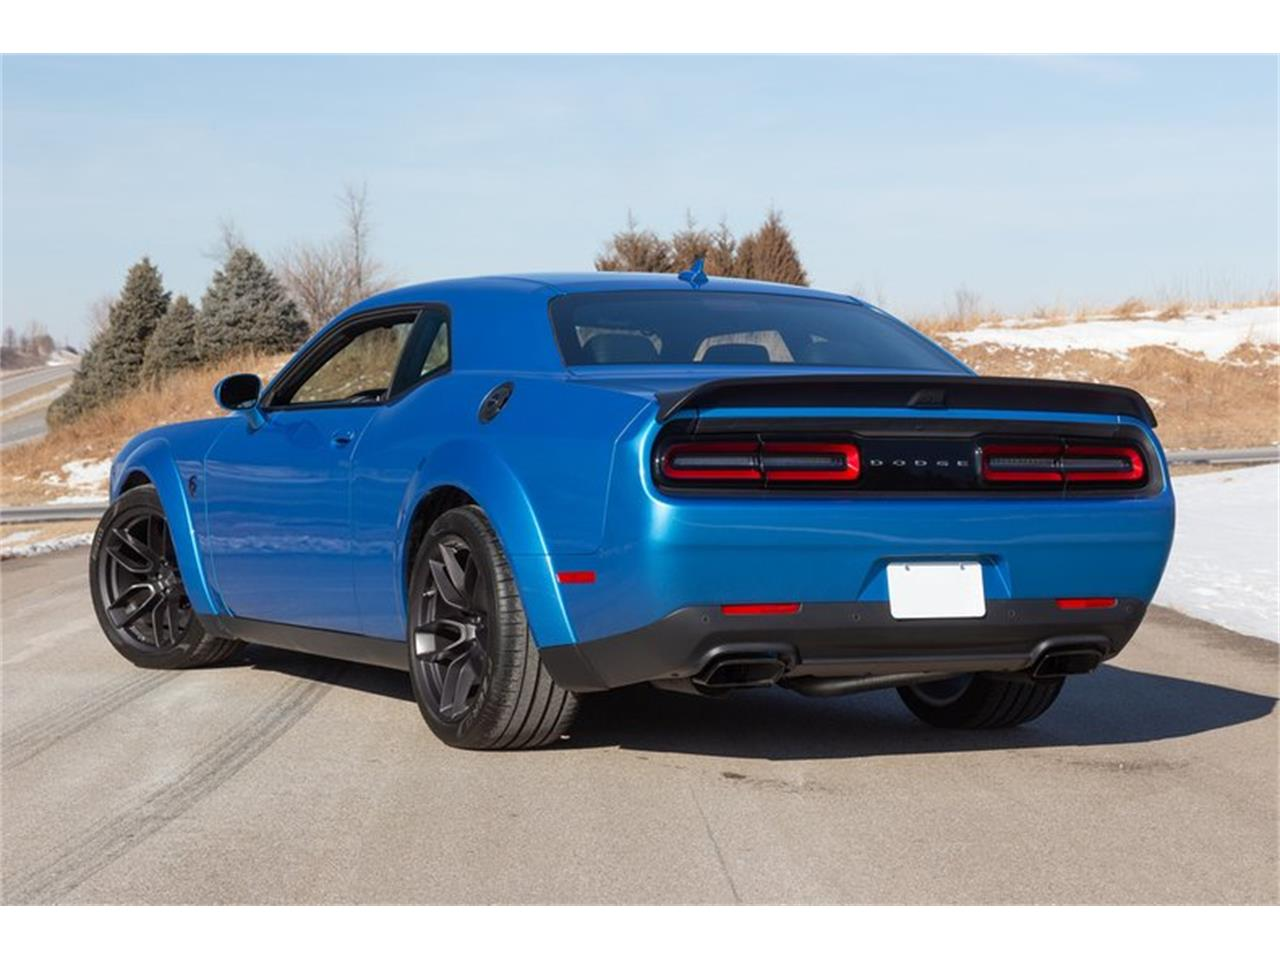 DODGE CHALLENGER R/t scat pack widebody 392 bva8 485hp